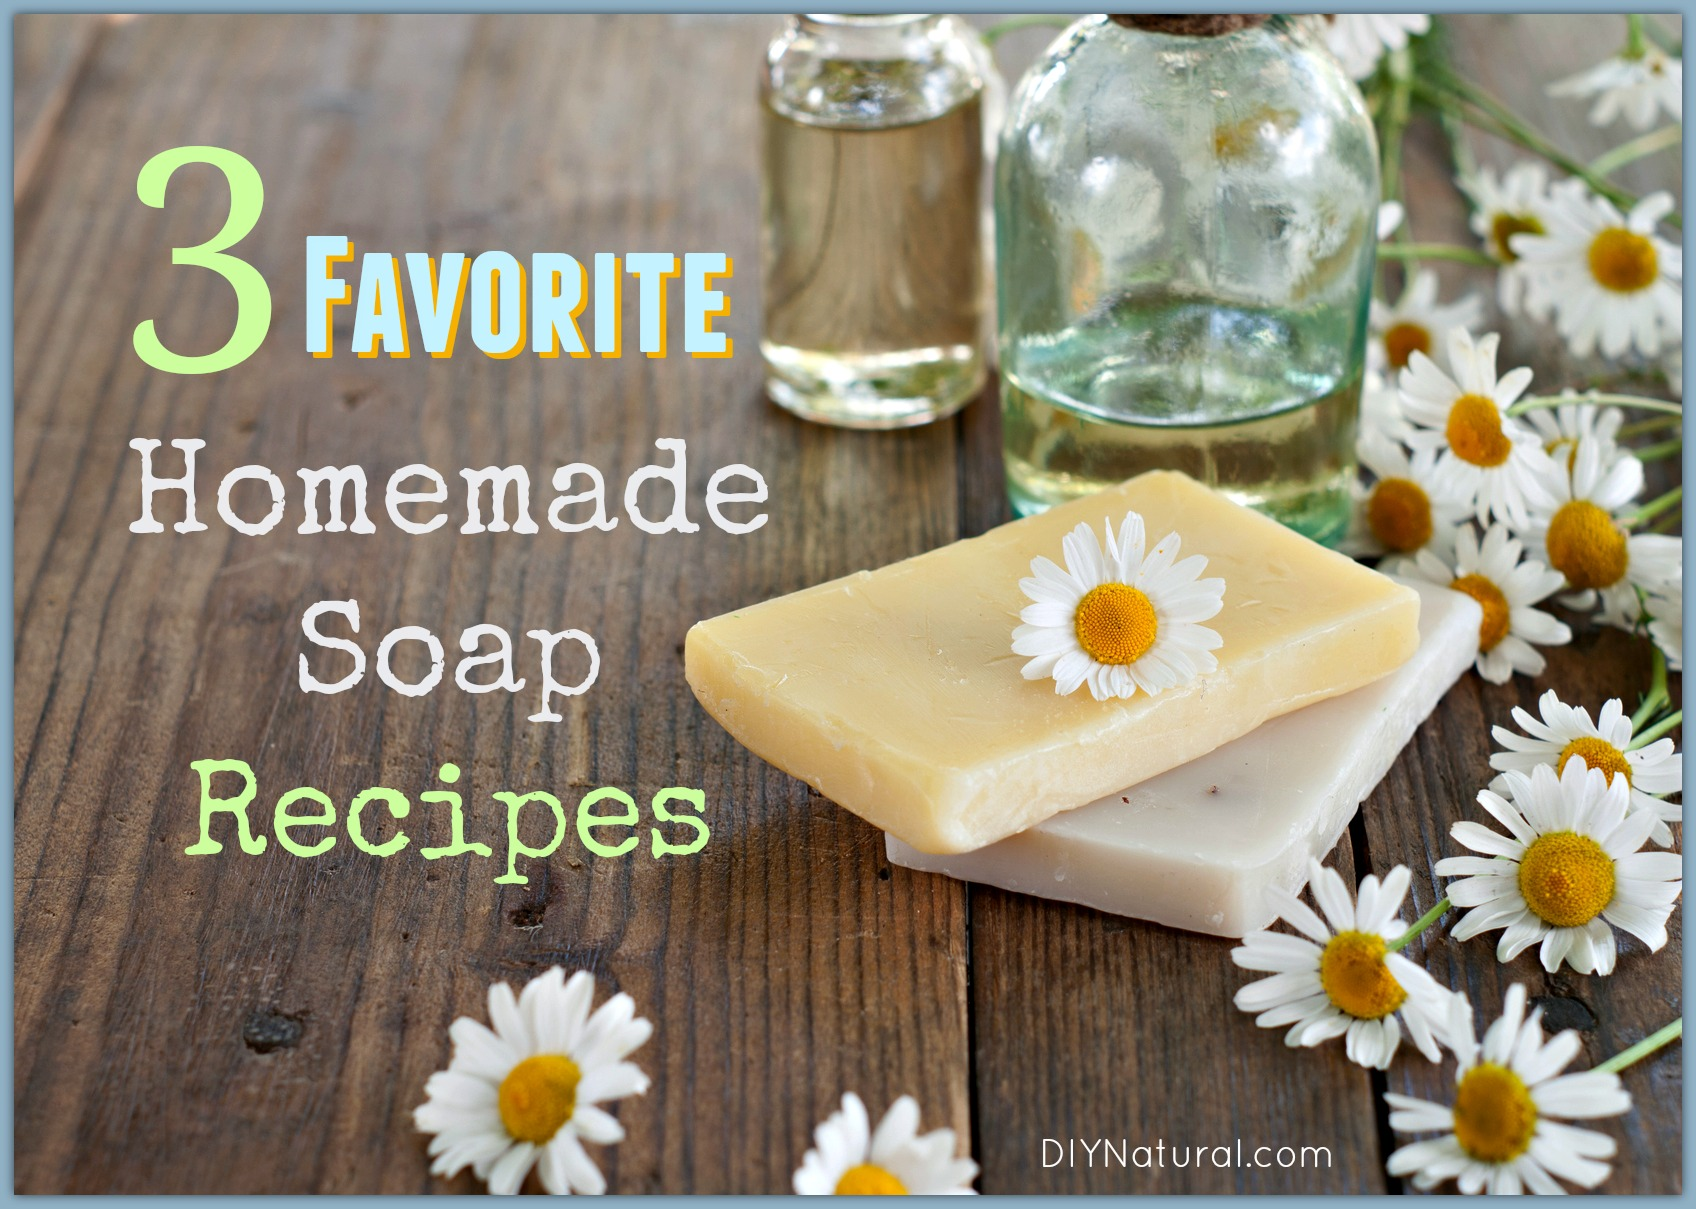 Diy Soap Without Glycerin Homemade Natural Glycerin Soap Recipes Homemade Ftempo